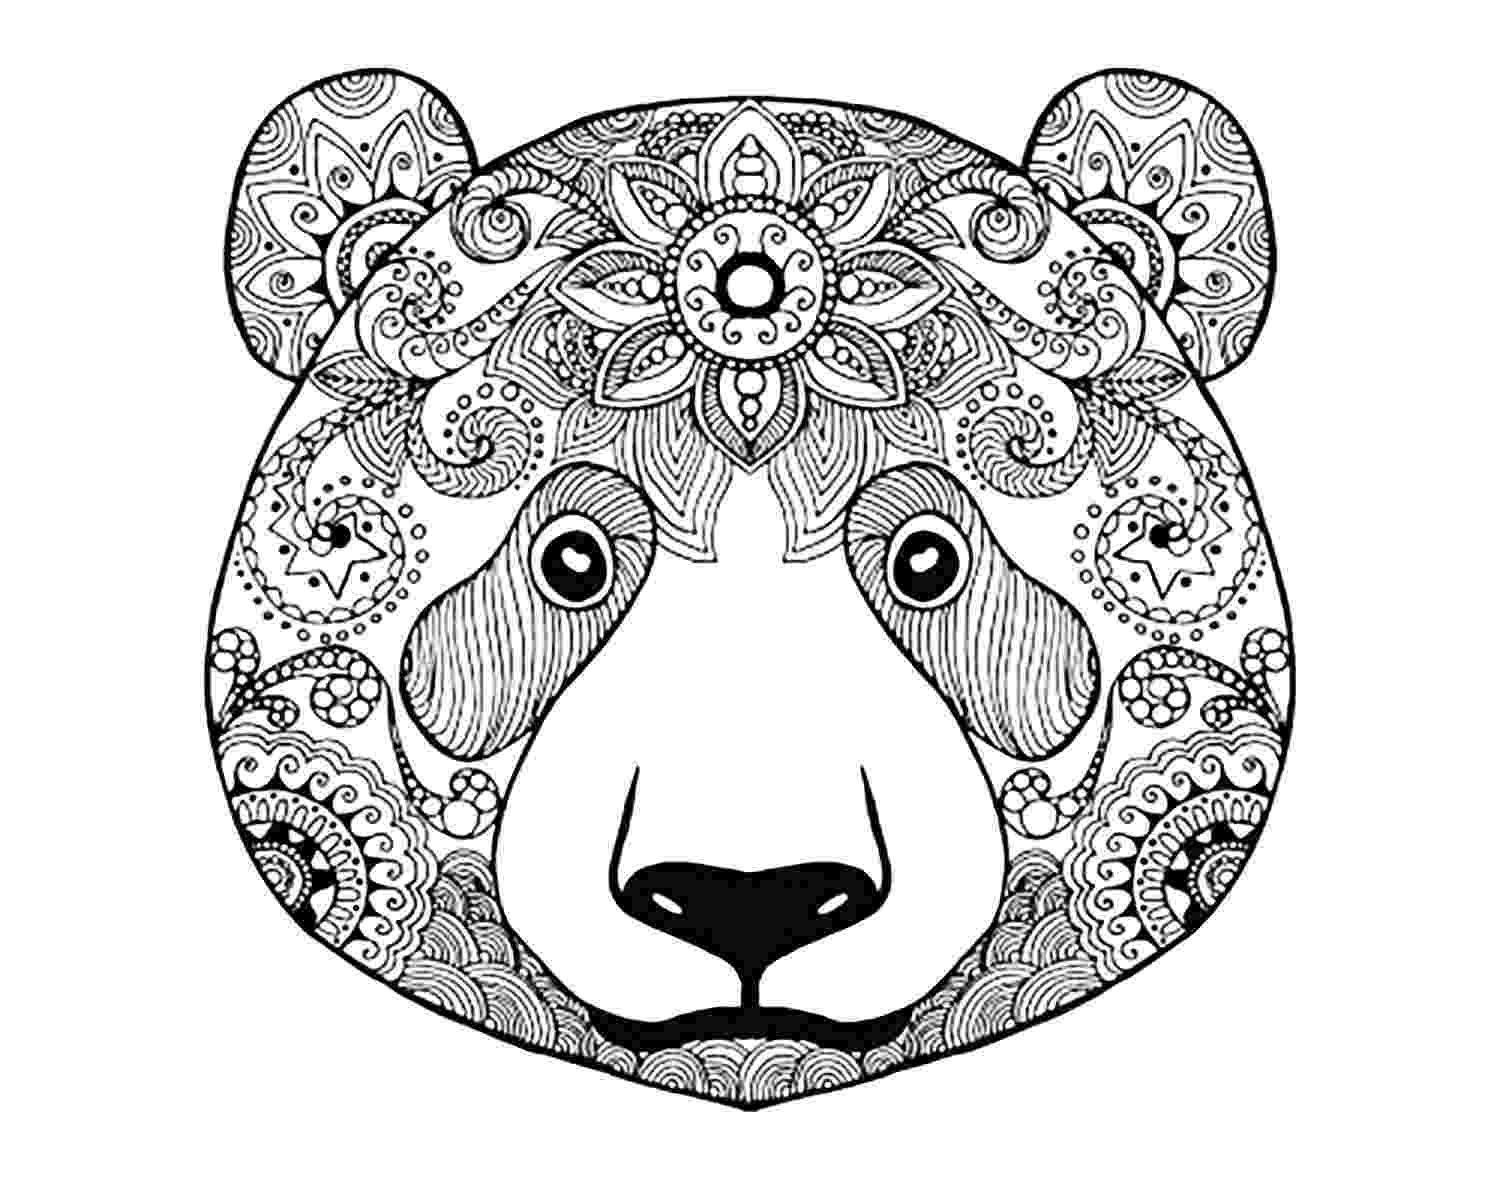 animals coloring book pages animal coloring pages pdf lion coloring pages mandala animals coloring pages book